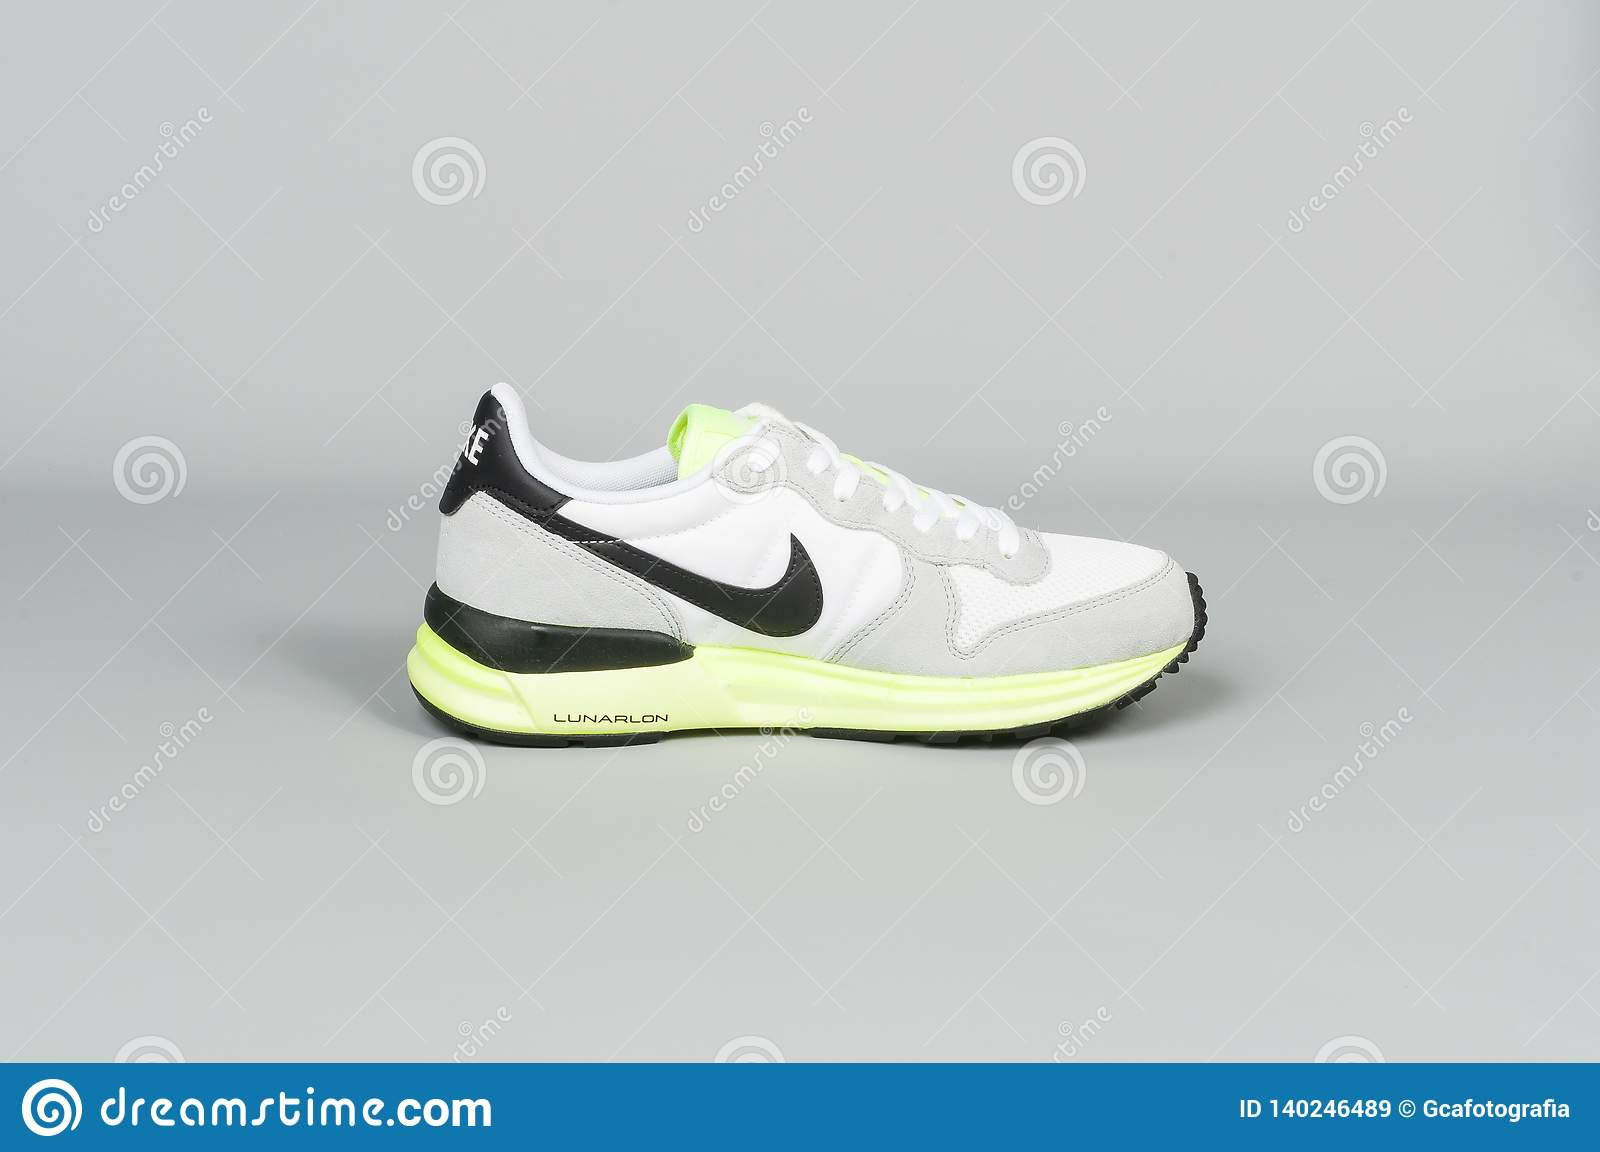 16140210 Medellin, Colombia- February 23, 2019: NIKE sports shoes on gray background